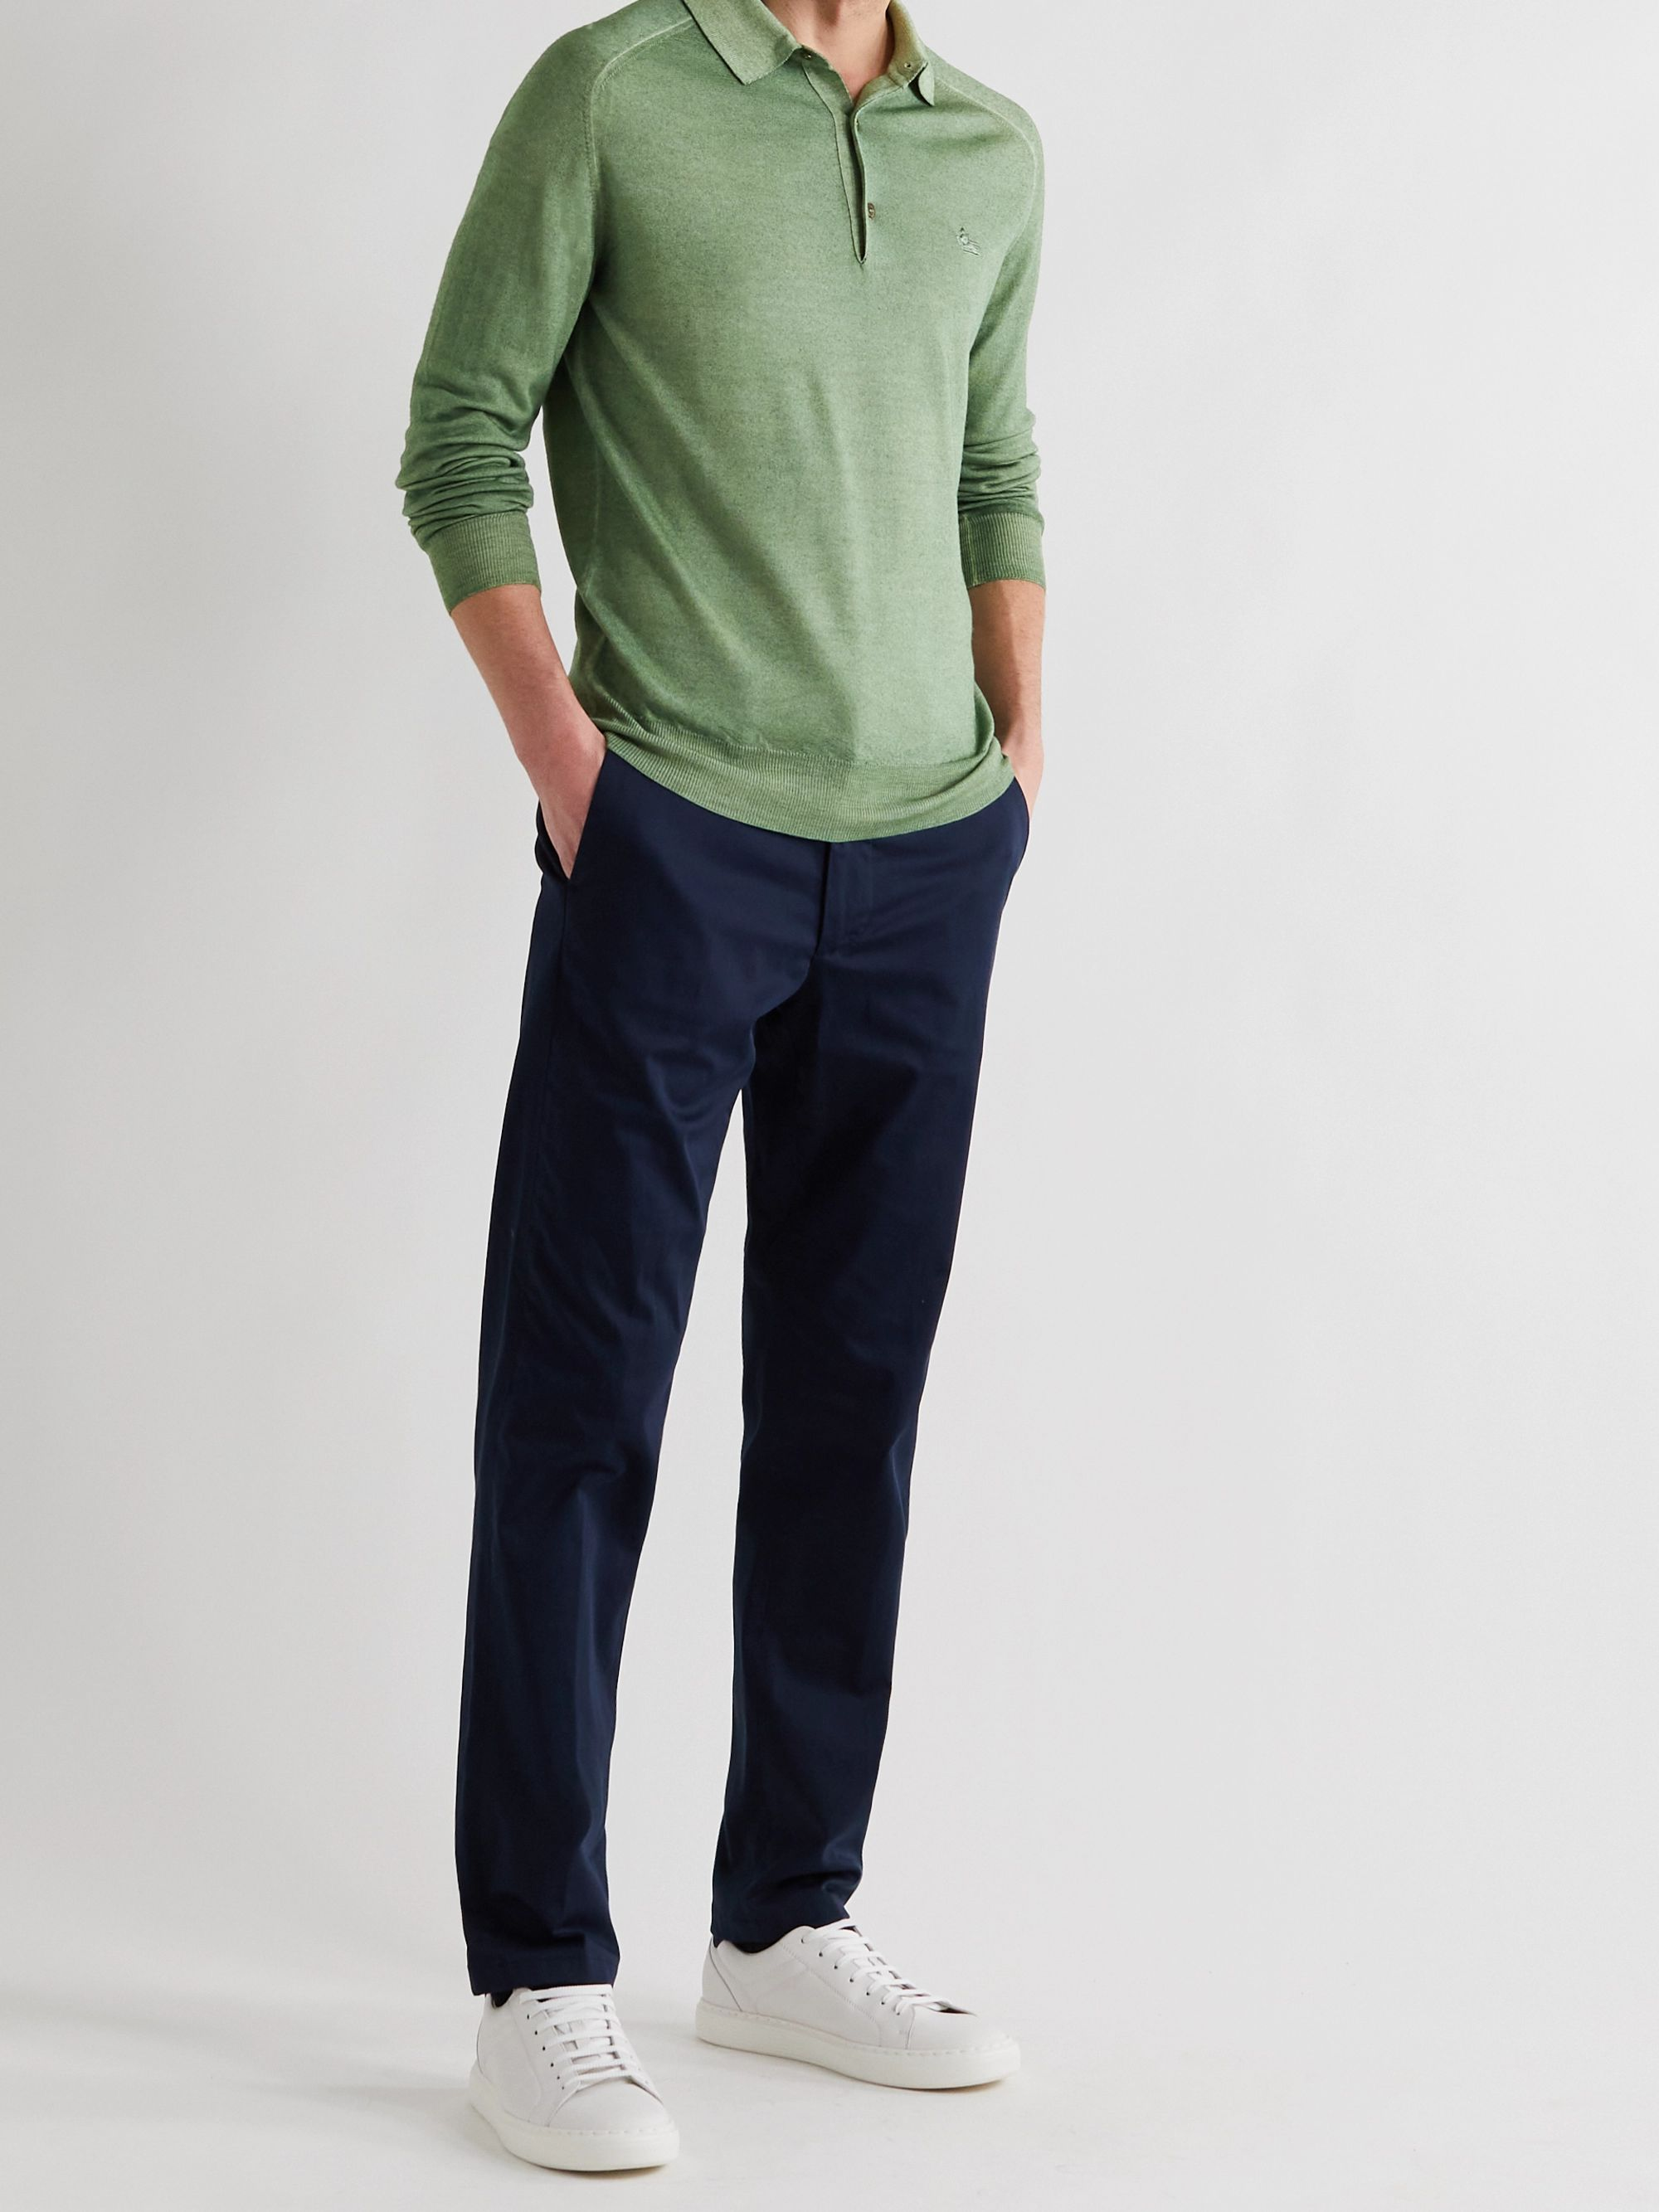 ETRO Slim-Fit Wool Polo Shirt